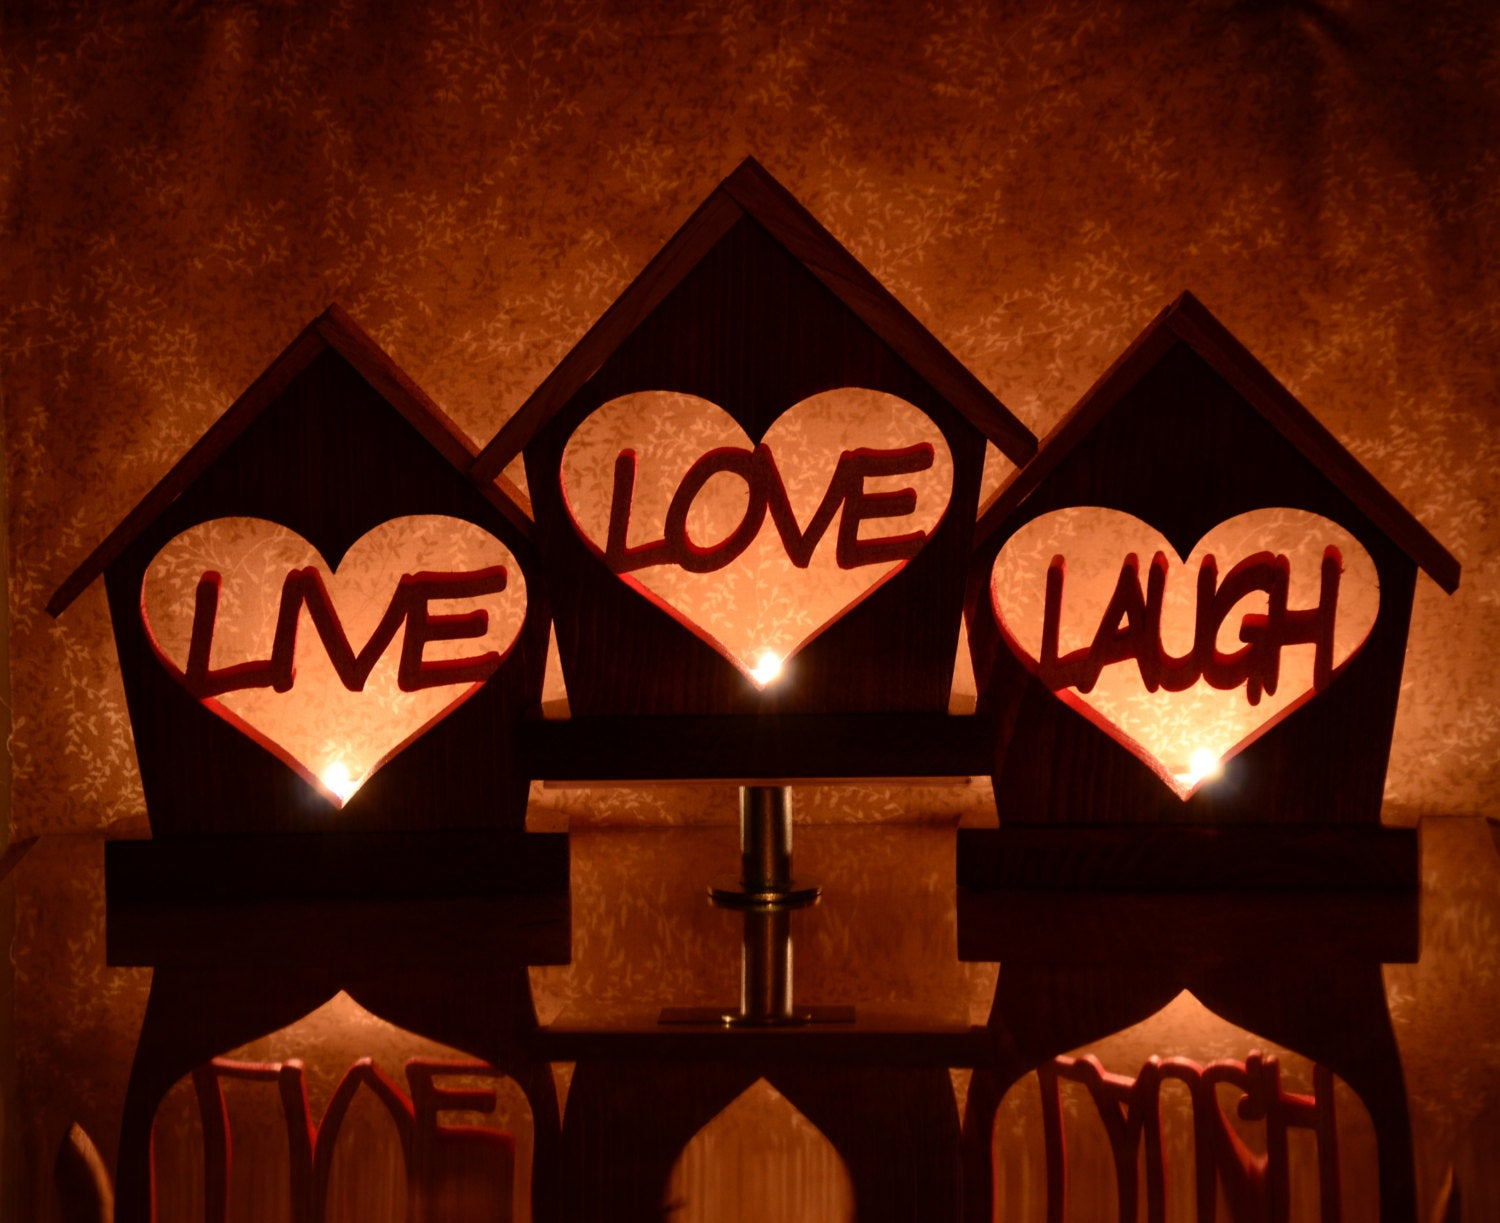 Live Love Laugh Tealight Candle Holder Circle Set- Personalized Inspirational Home Decor Gift